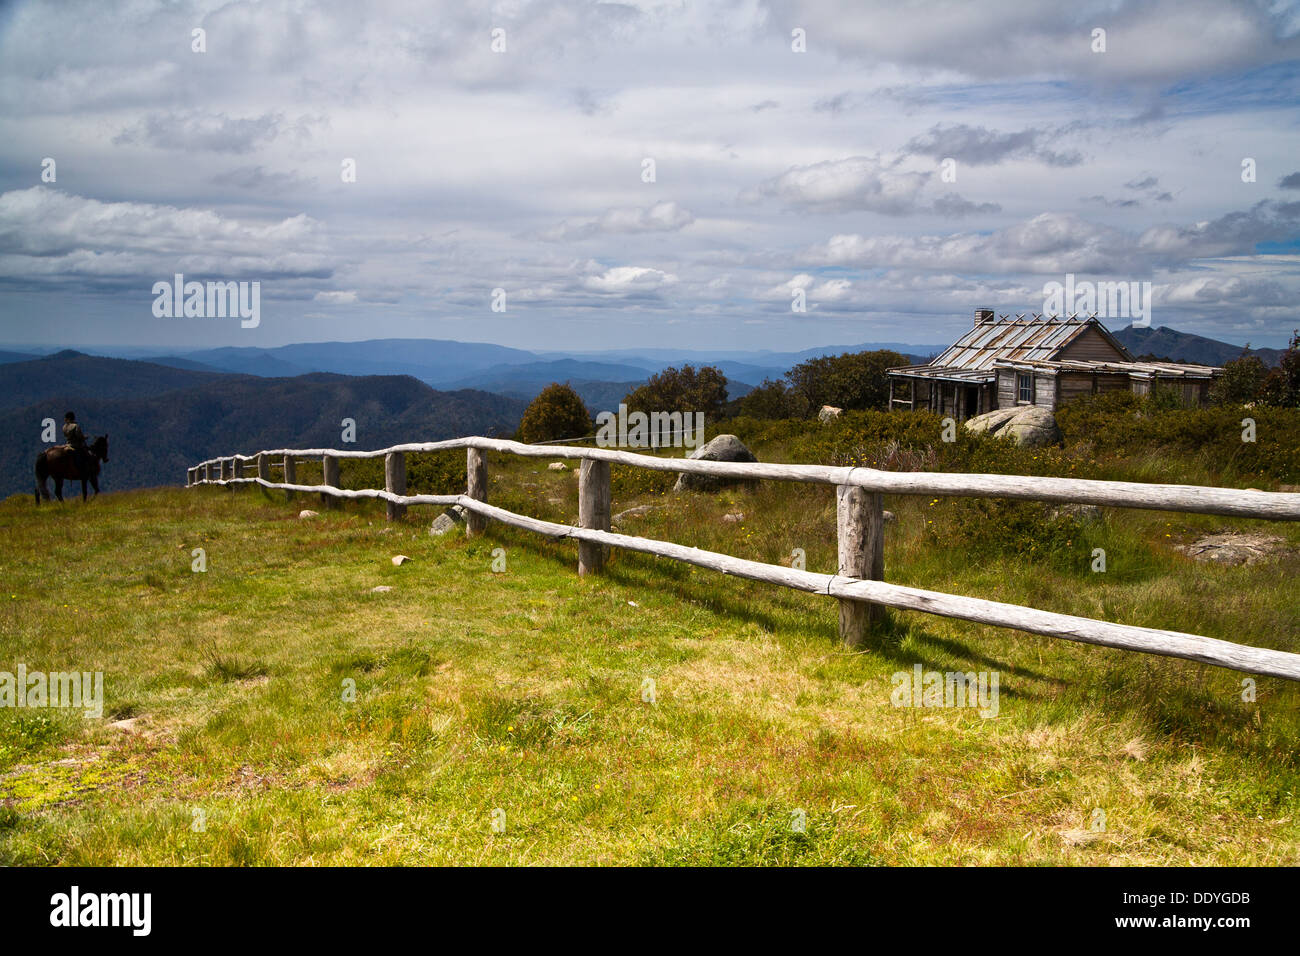 Craig's Hut from the set of 'Man from Snowy River' in Victoria's High Country, Australia - Stock Image